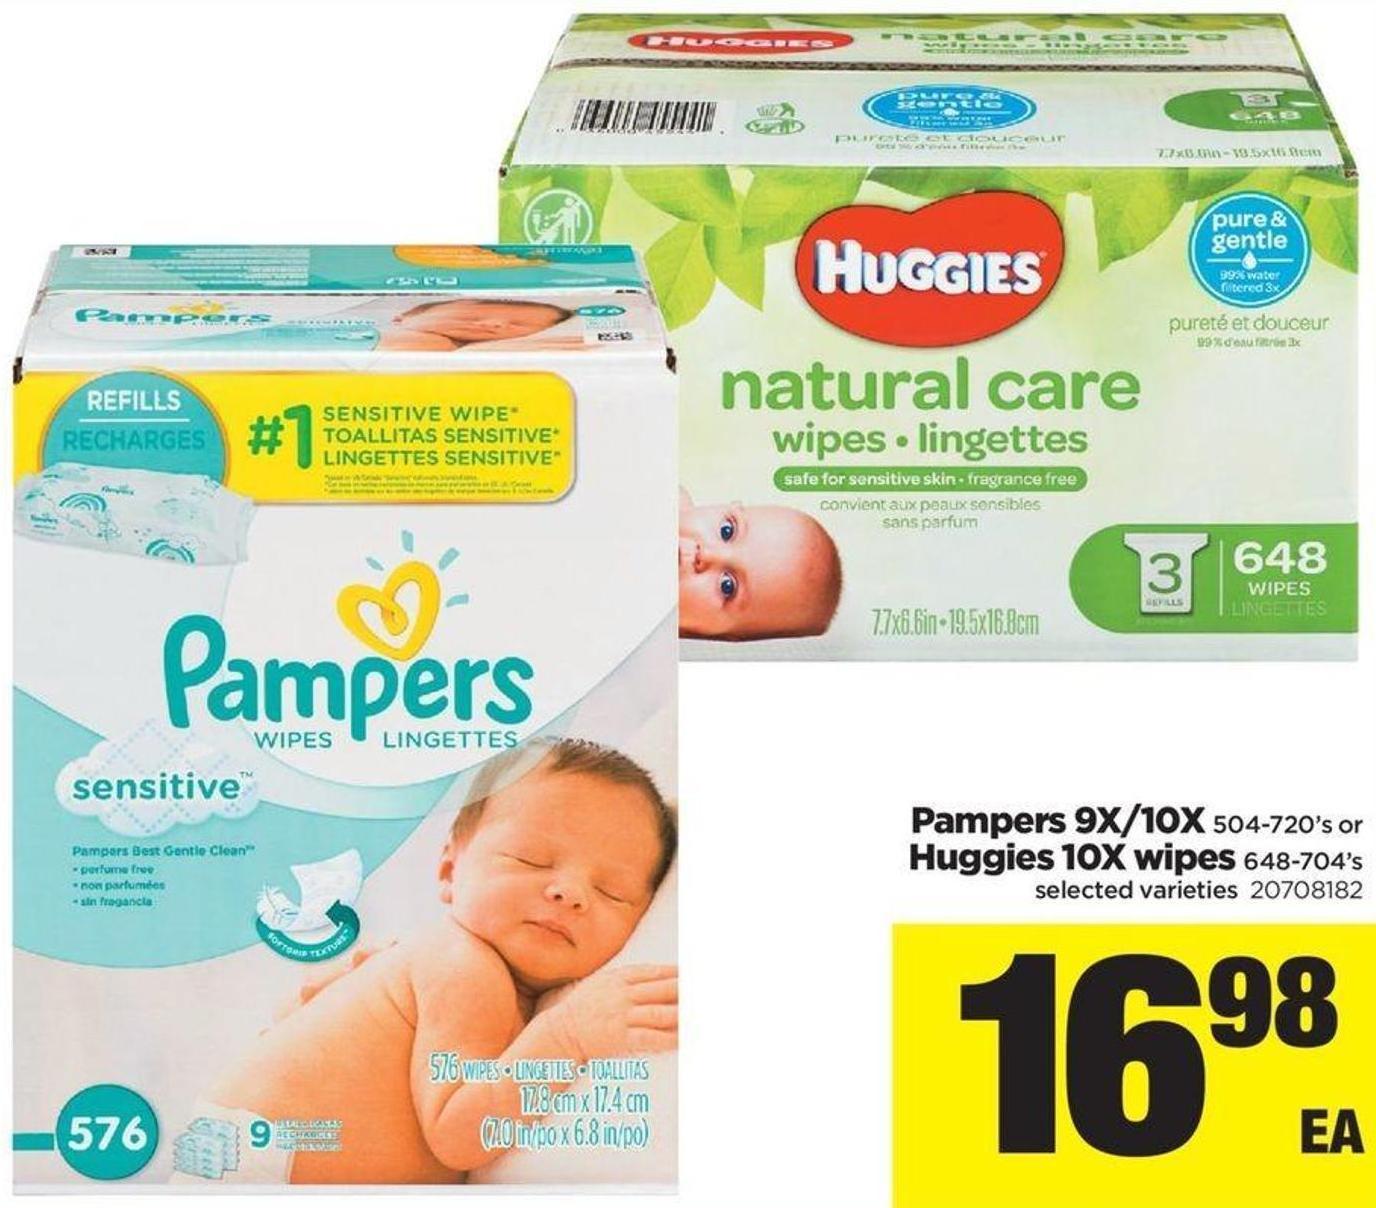 Pampers 9x/10x 504-720's Or Huggies 10x Wipes - 648-704's